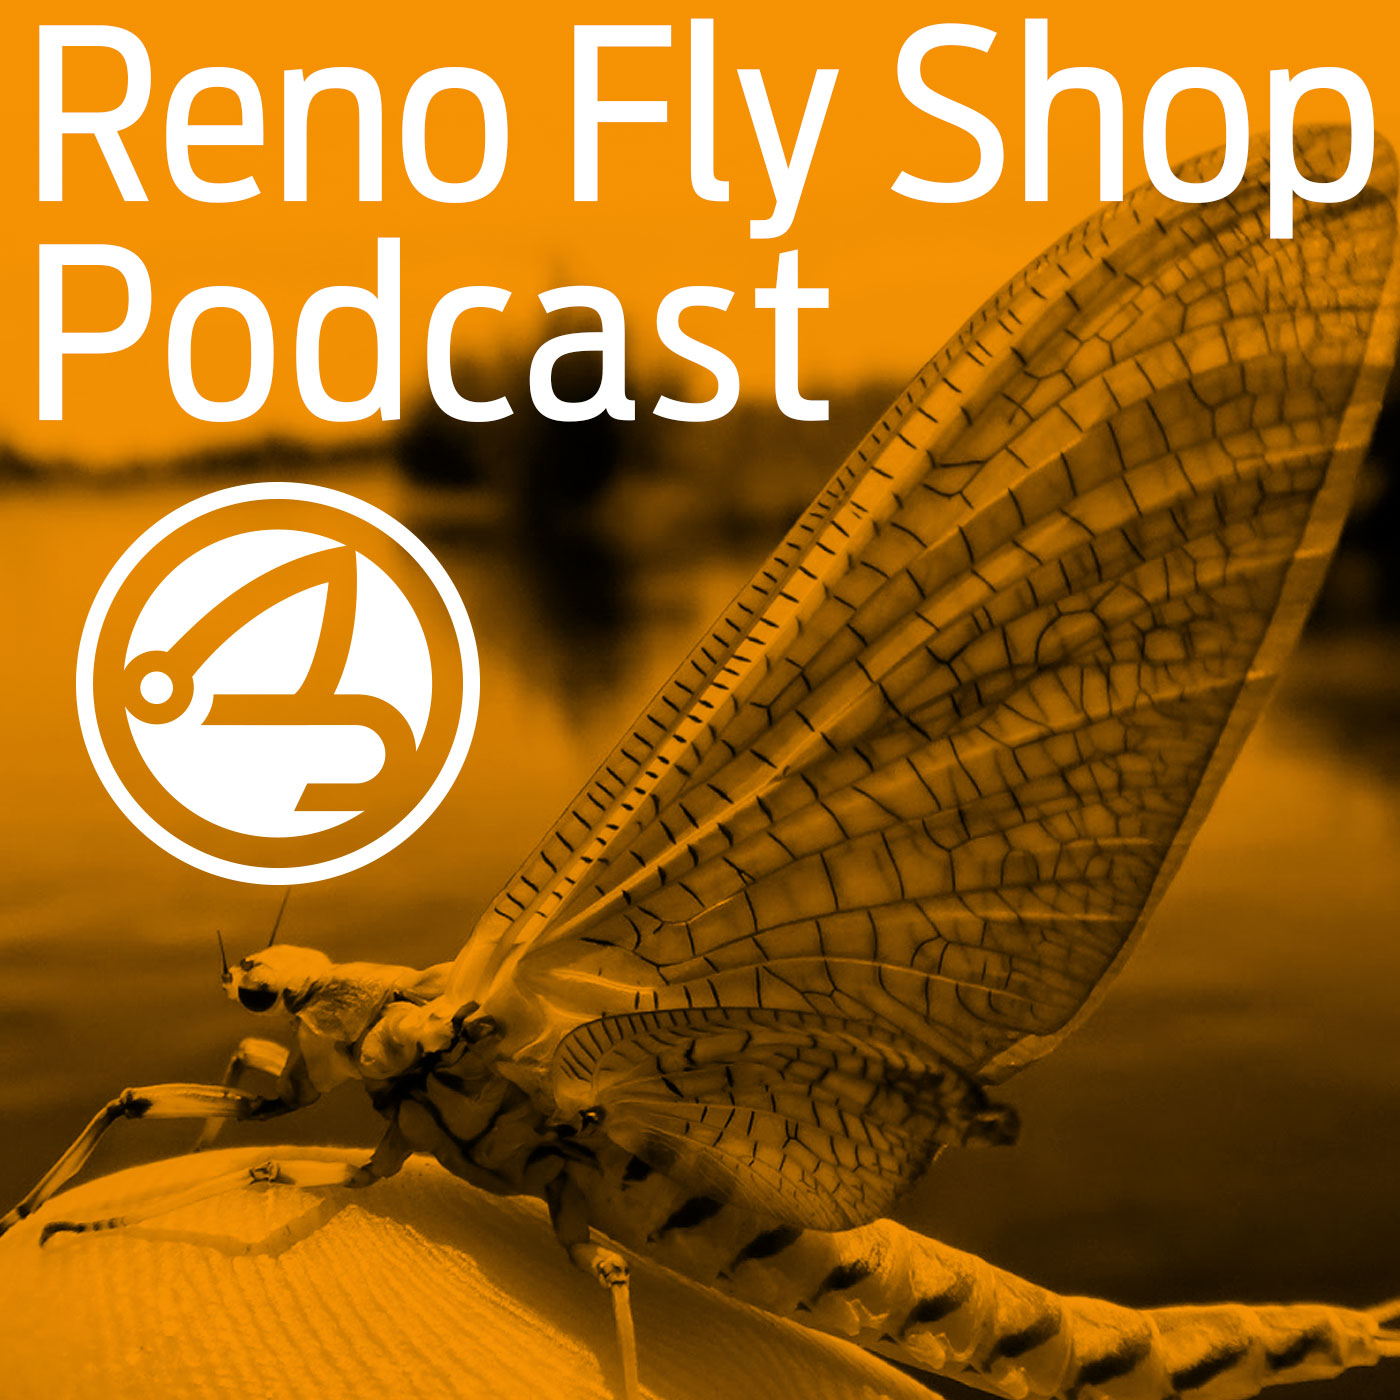 Reno Fly Shop Podcast – Special Guests, Fly Fishing Reports and the RFS Events Calendar